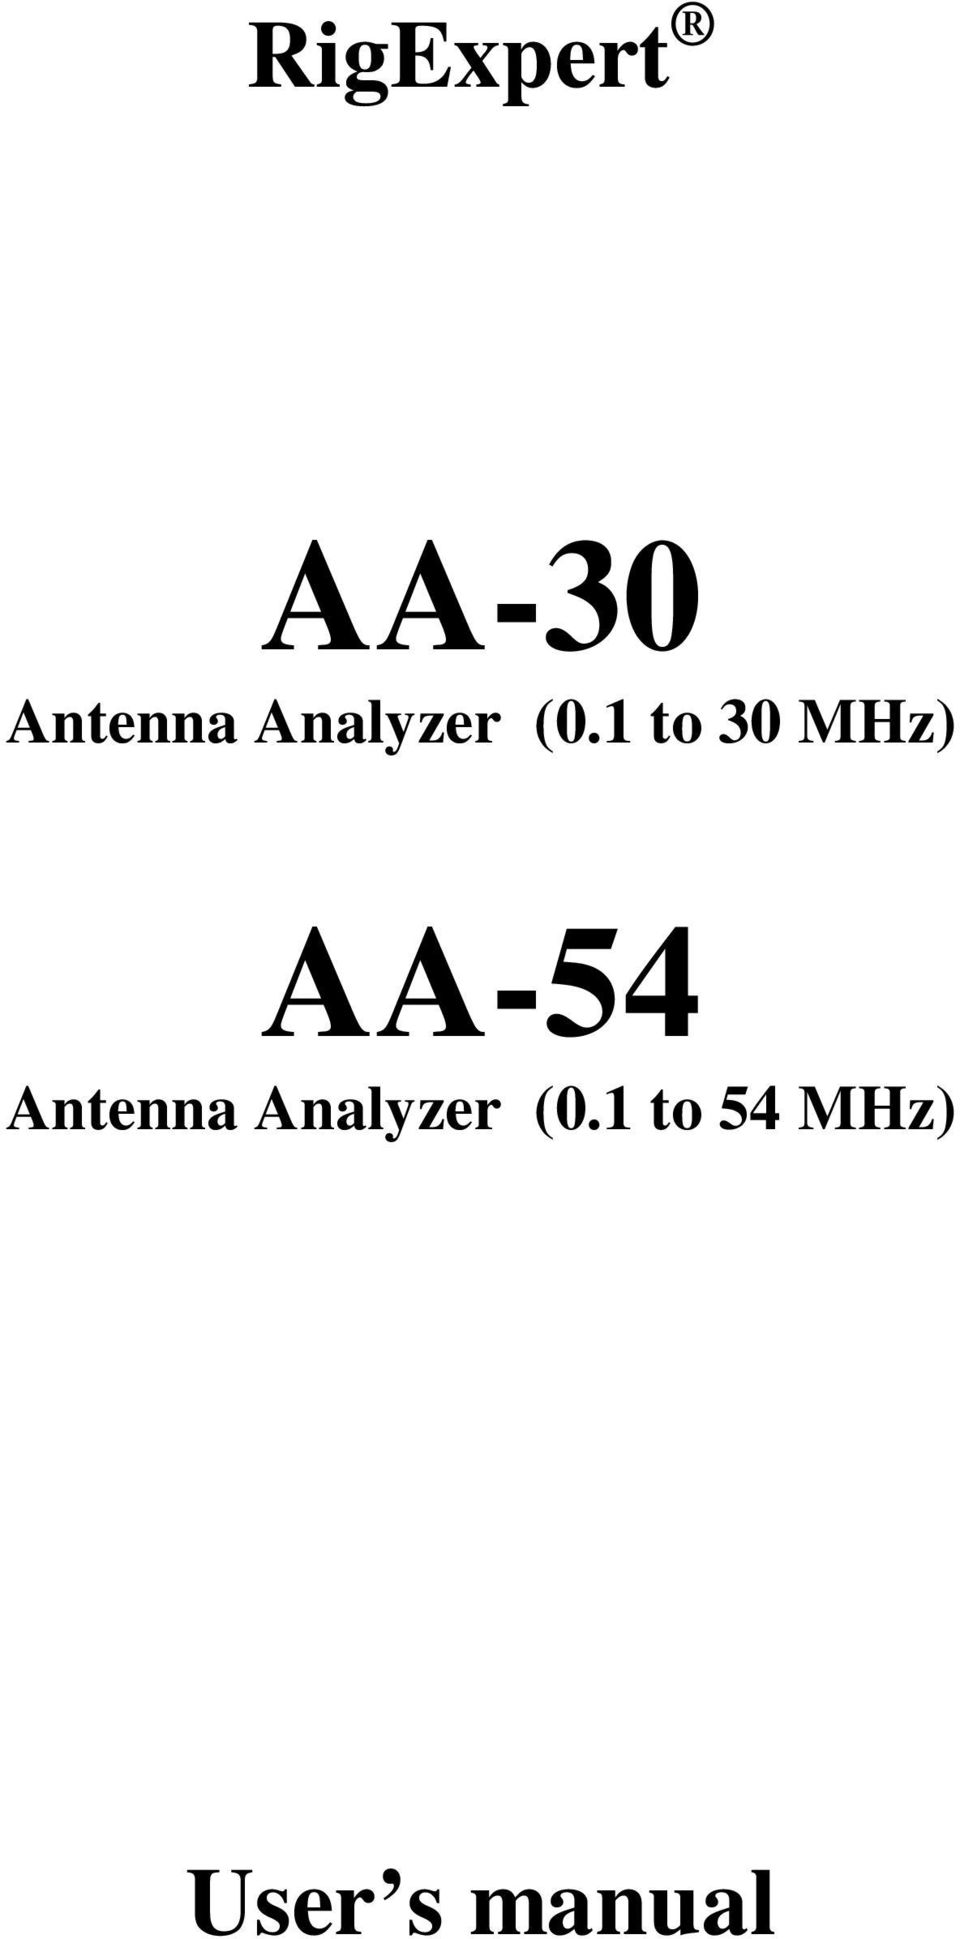 1 to 30 MHz) AA-54